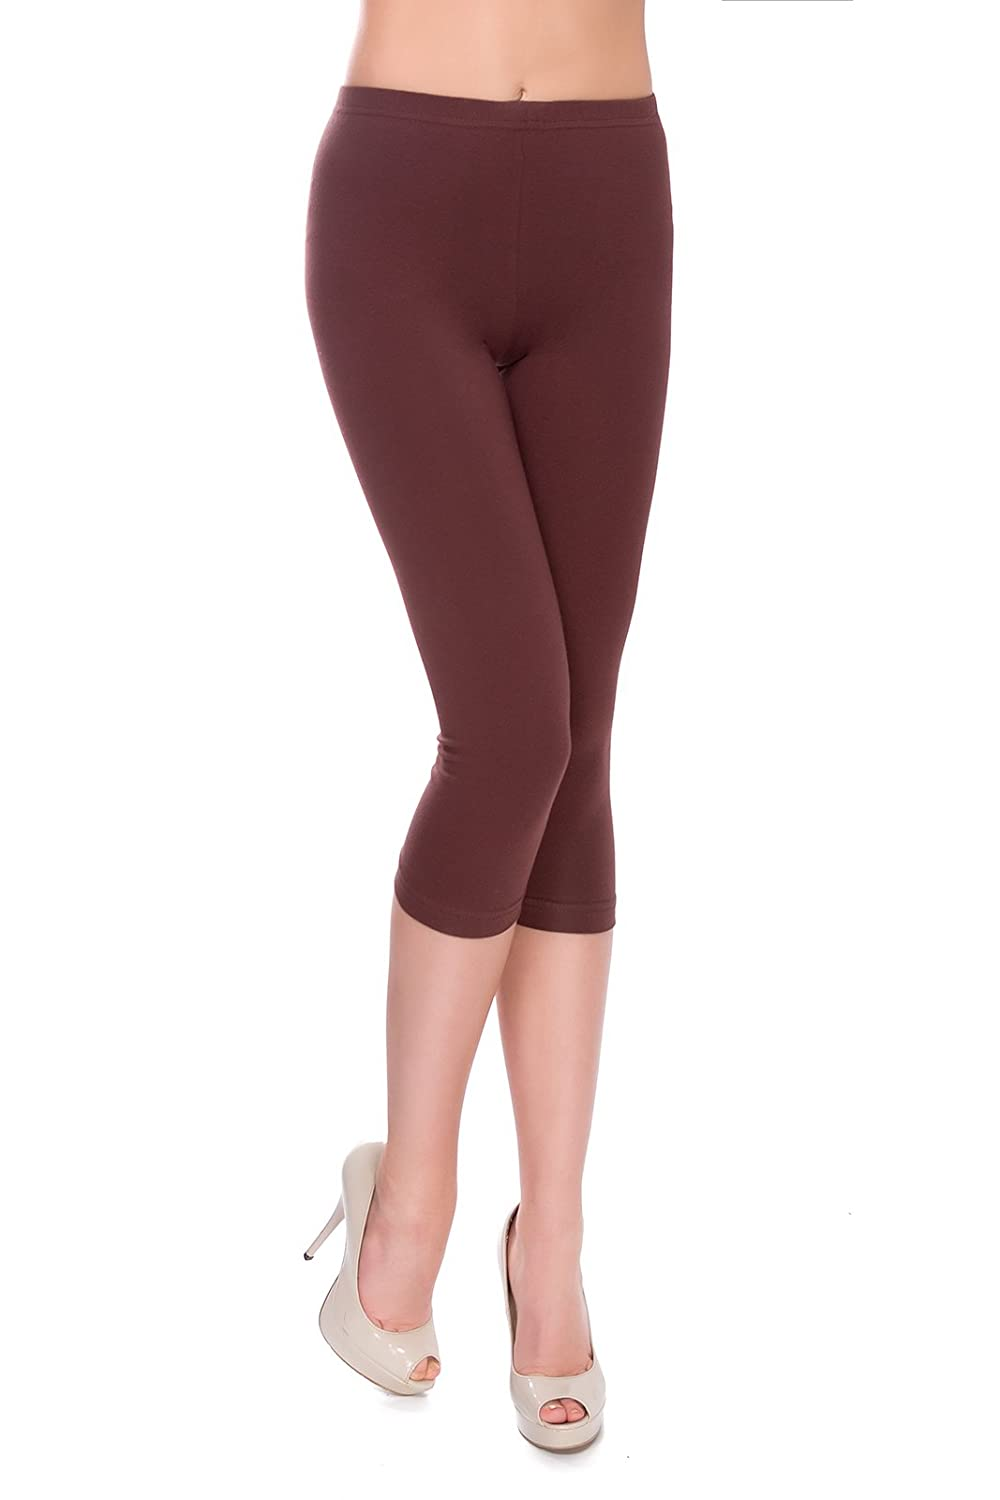 MITAAMI Cropped Leggings for Women 3/4 Length Trousers Plus Size 8-28 UK MIDL2